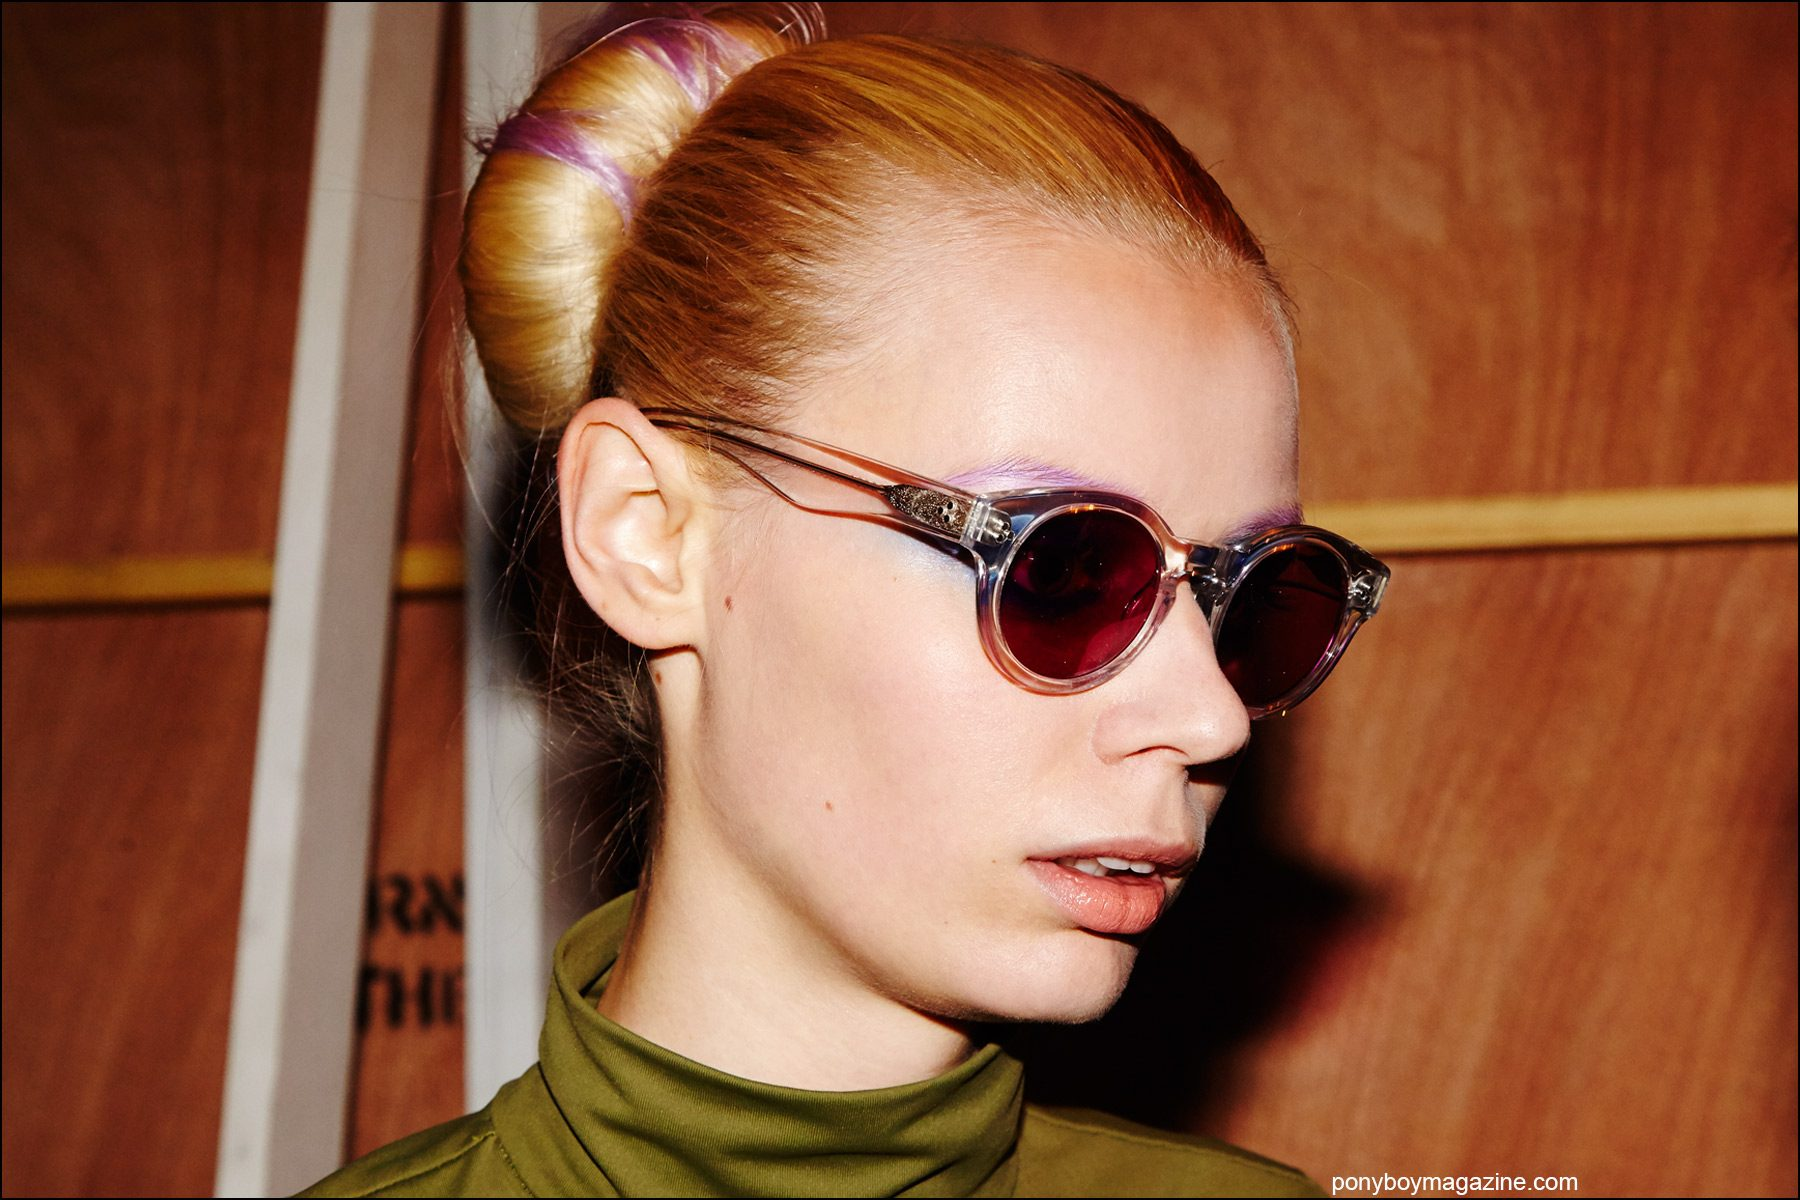 Portrait of a model in eyewear, backstage at Georgine Spring/Summer 2016 womenswear collection. Photograph by Alexander Thompson for Ponyboy magazine NY.